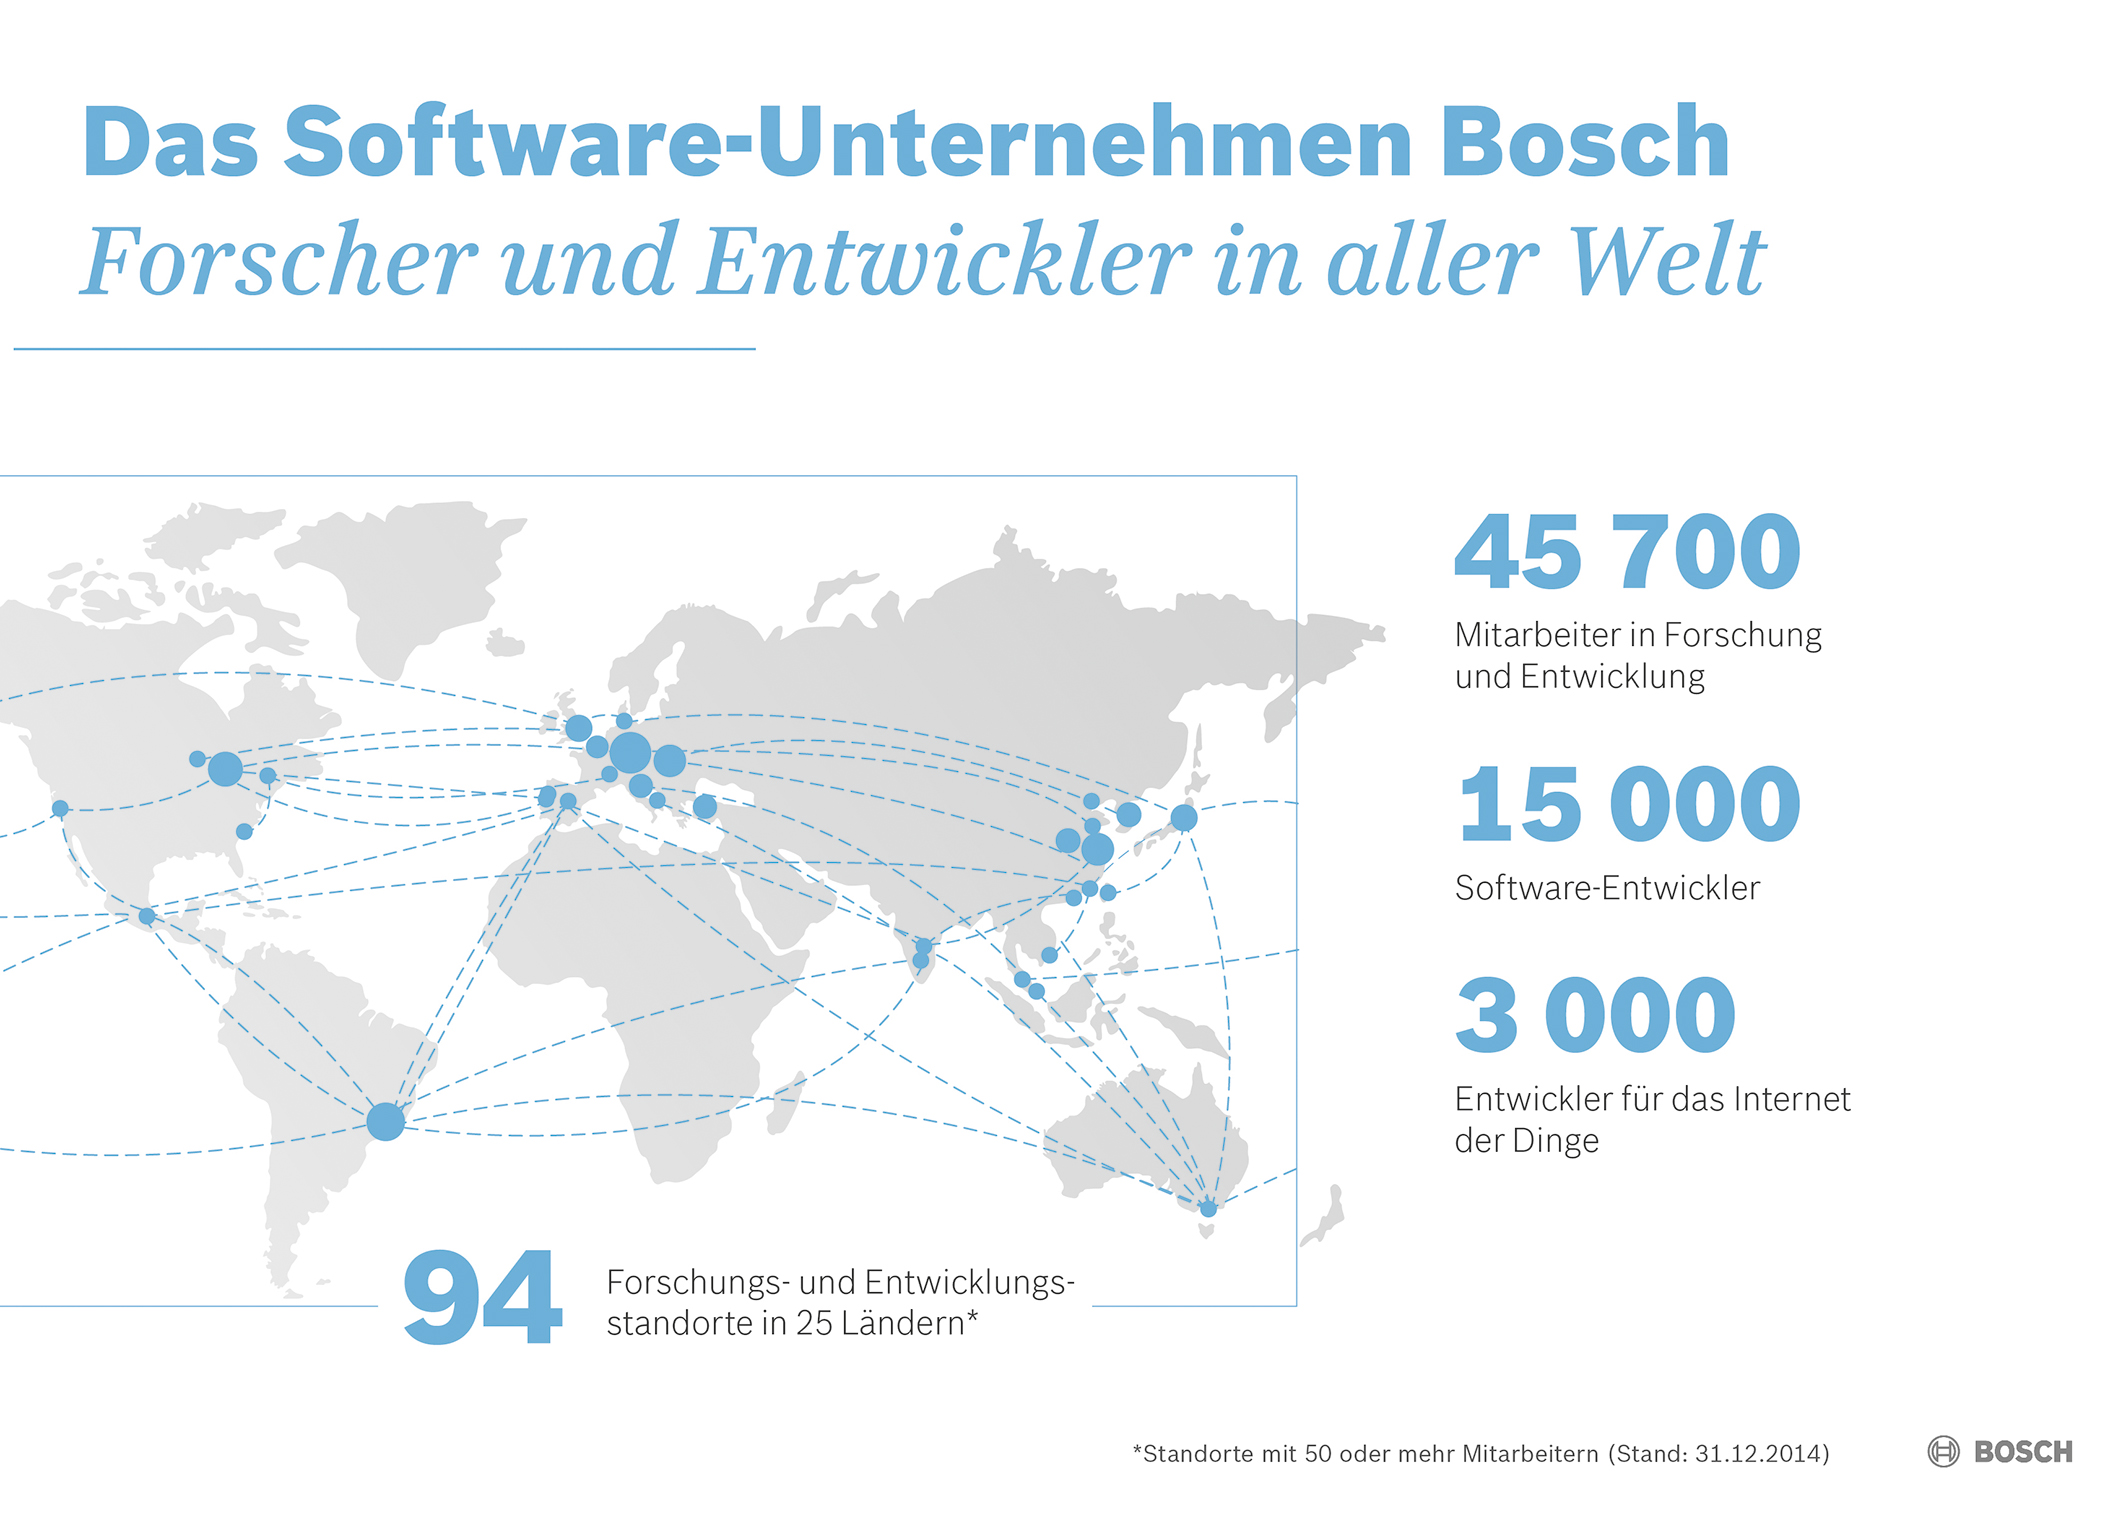 Key data for 2014:  Bosch as software company